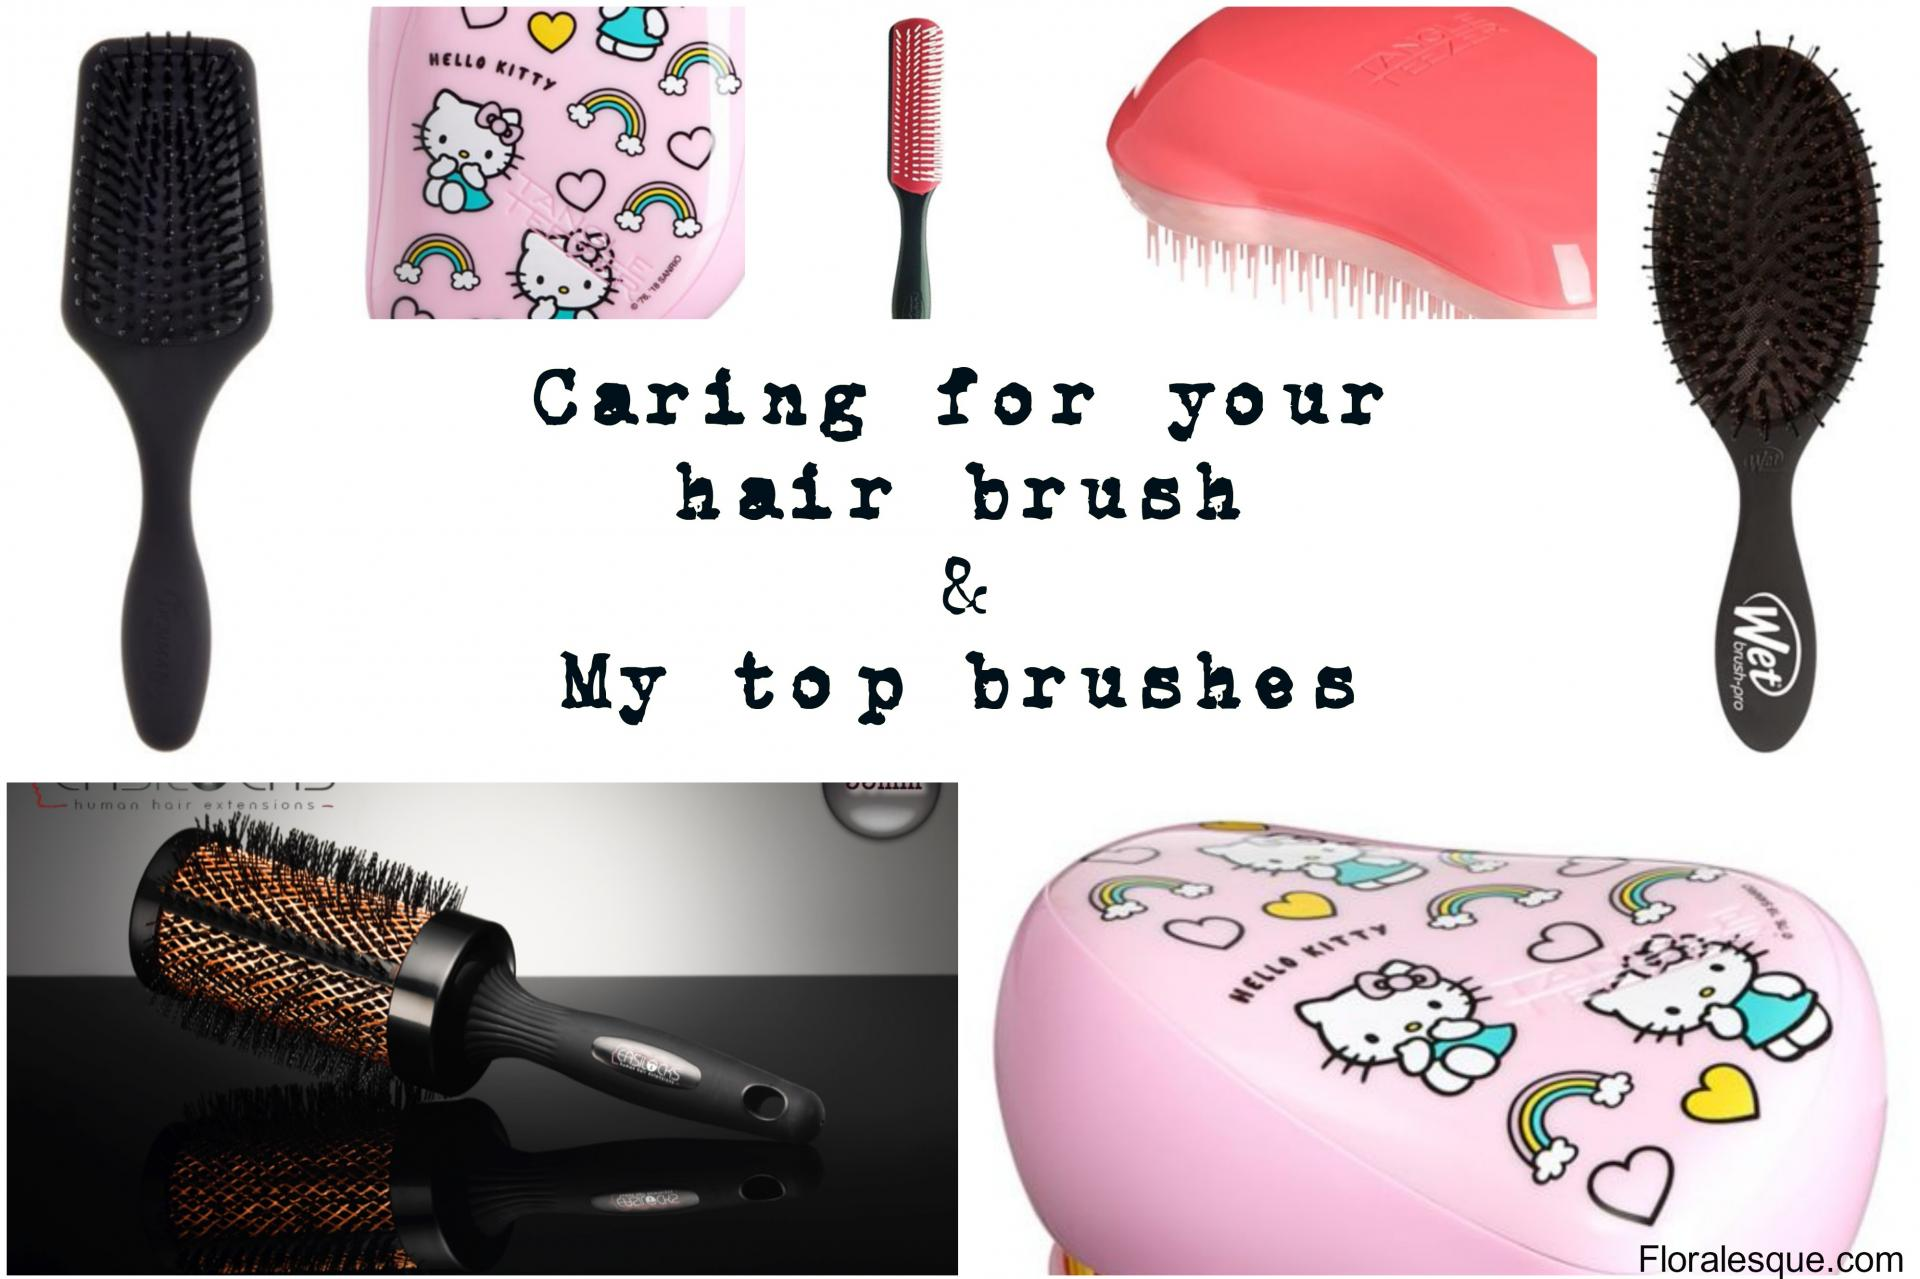 Caring for your hair brush & my top brushes